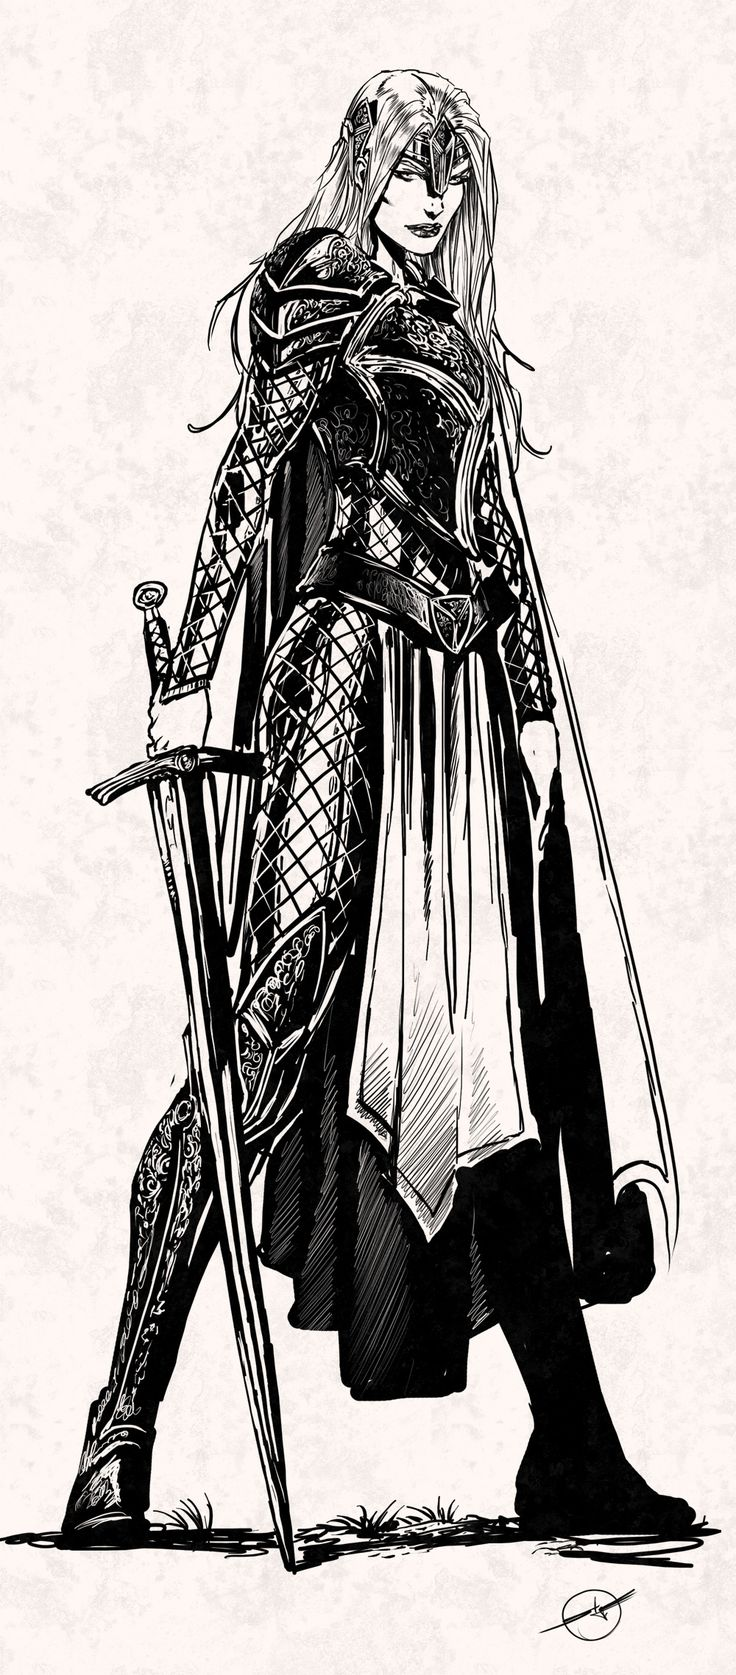 lady pendragon quickie by nebezial female elf fighter ranger armor clothes clothing fashion player character npc | Create your own roleplaying game material w/ RPG Bard: www.rpgbard.com | Writing inspiration for Dungeons and Dragons DND D&D Pathfinder PFRPG Warhammer 40k Star Wars Shadowrun Call of Cthulhu Lord of the Rings LoTR + d20 fantasy science fiction scifi horror design | Not Trusty Sword art: click artwork for source